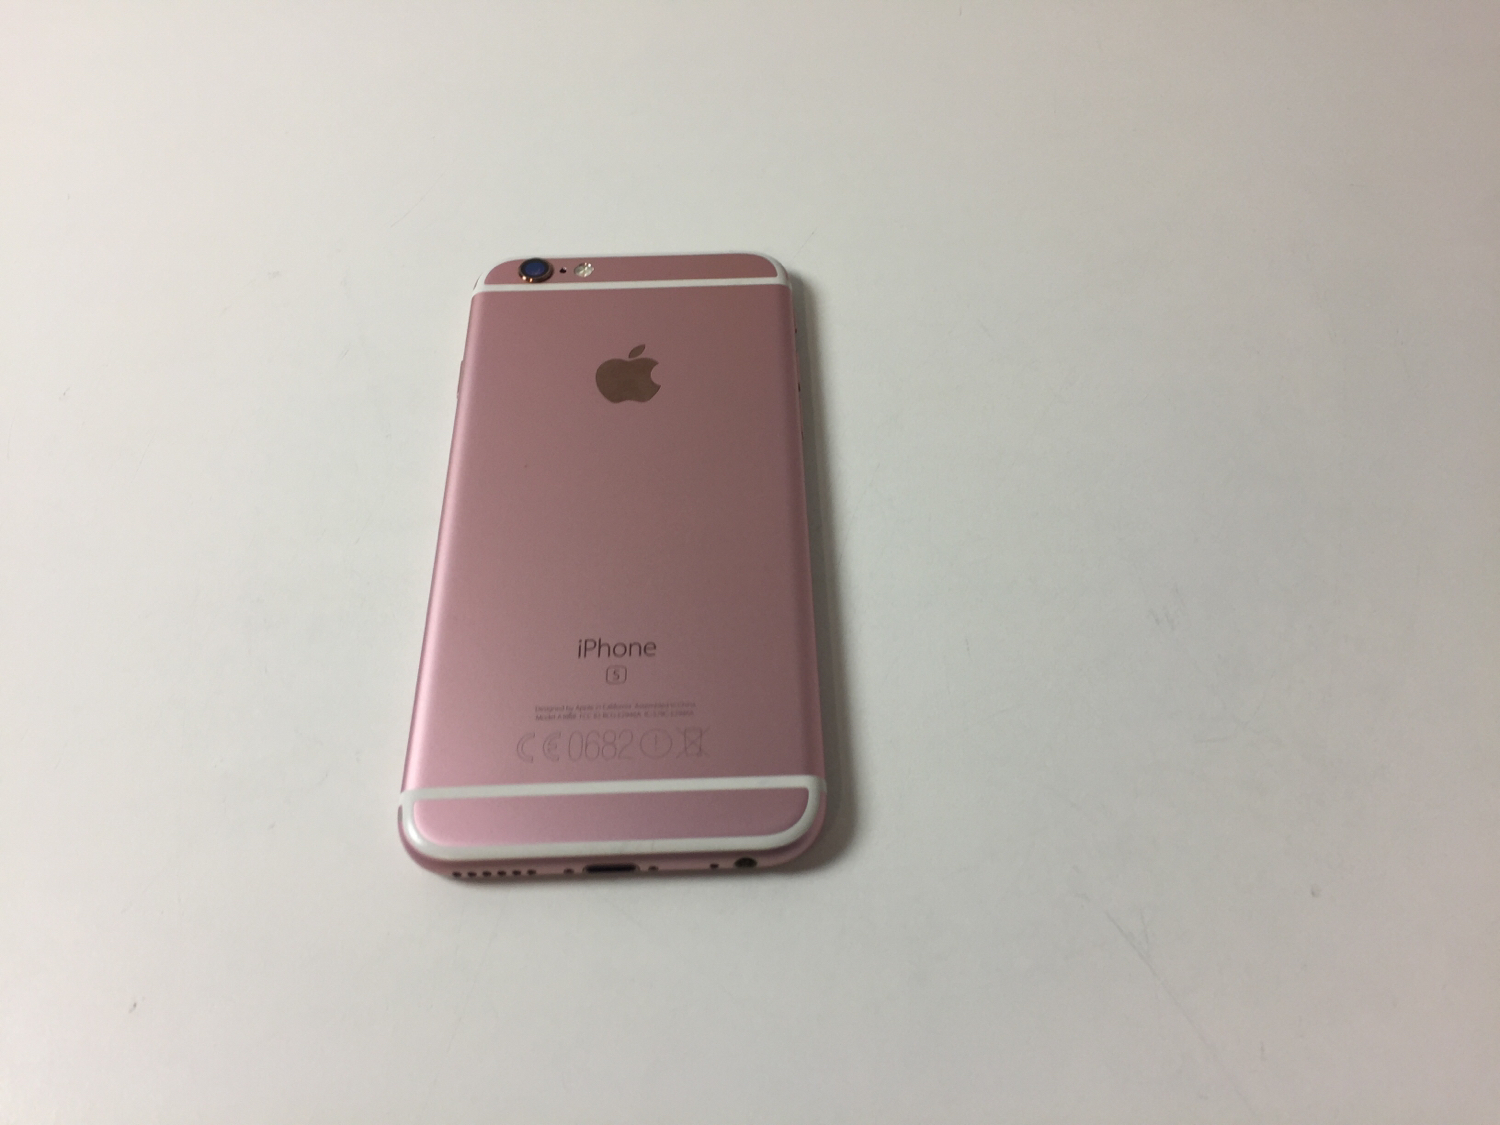 iPhone 6S 16GB, 16GB, Rose Gold, Afbeelding 2